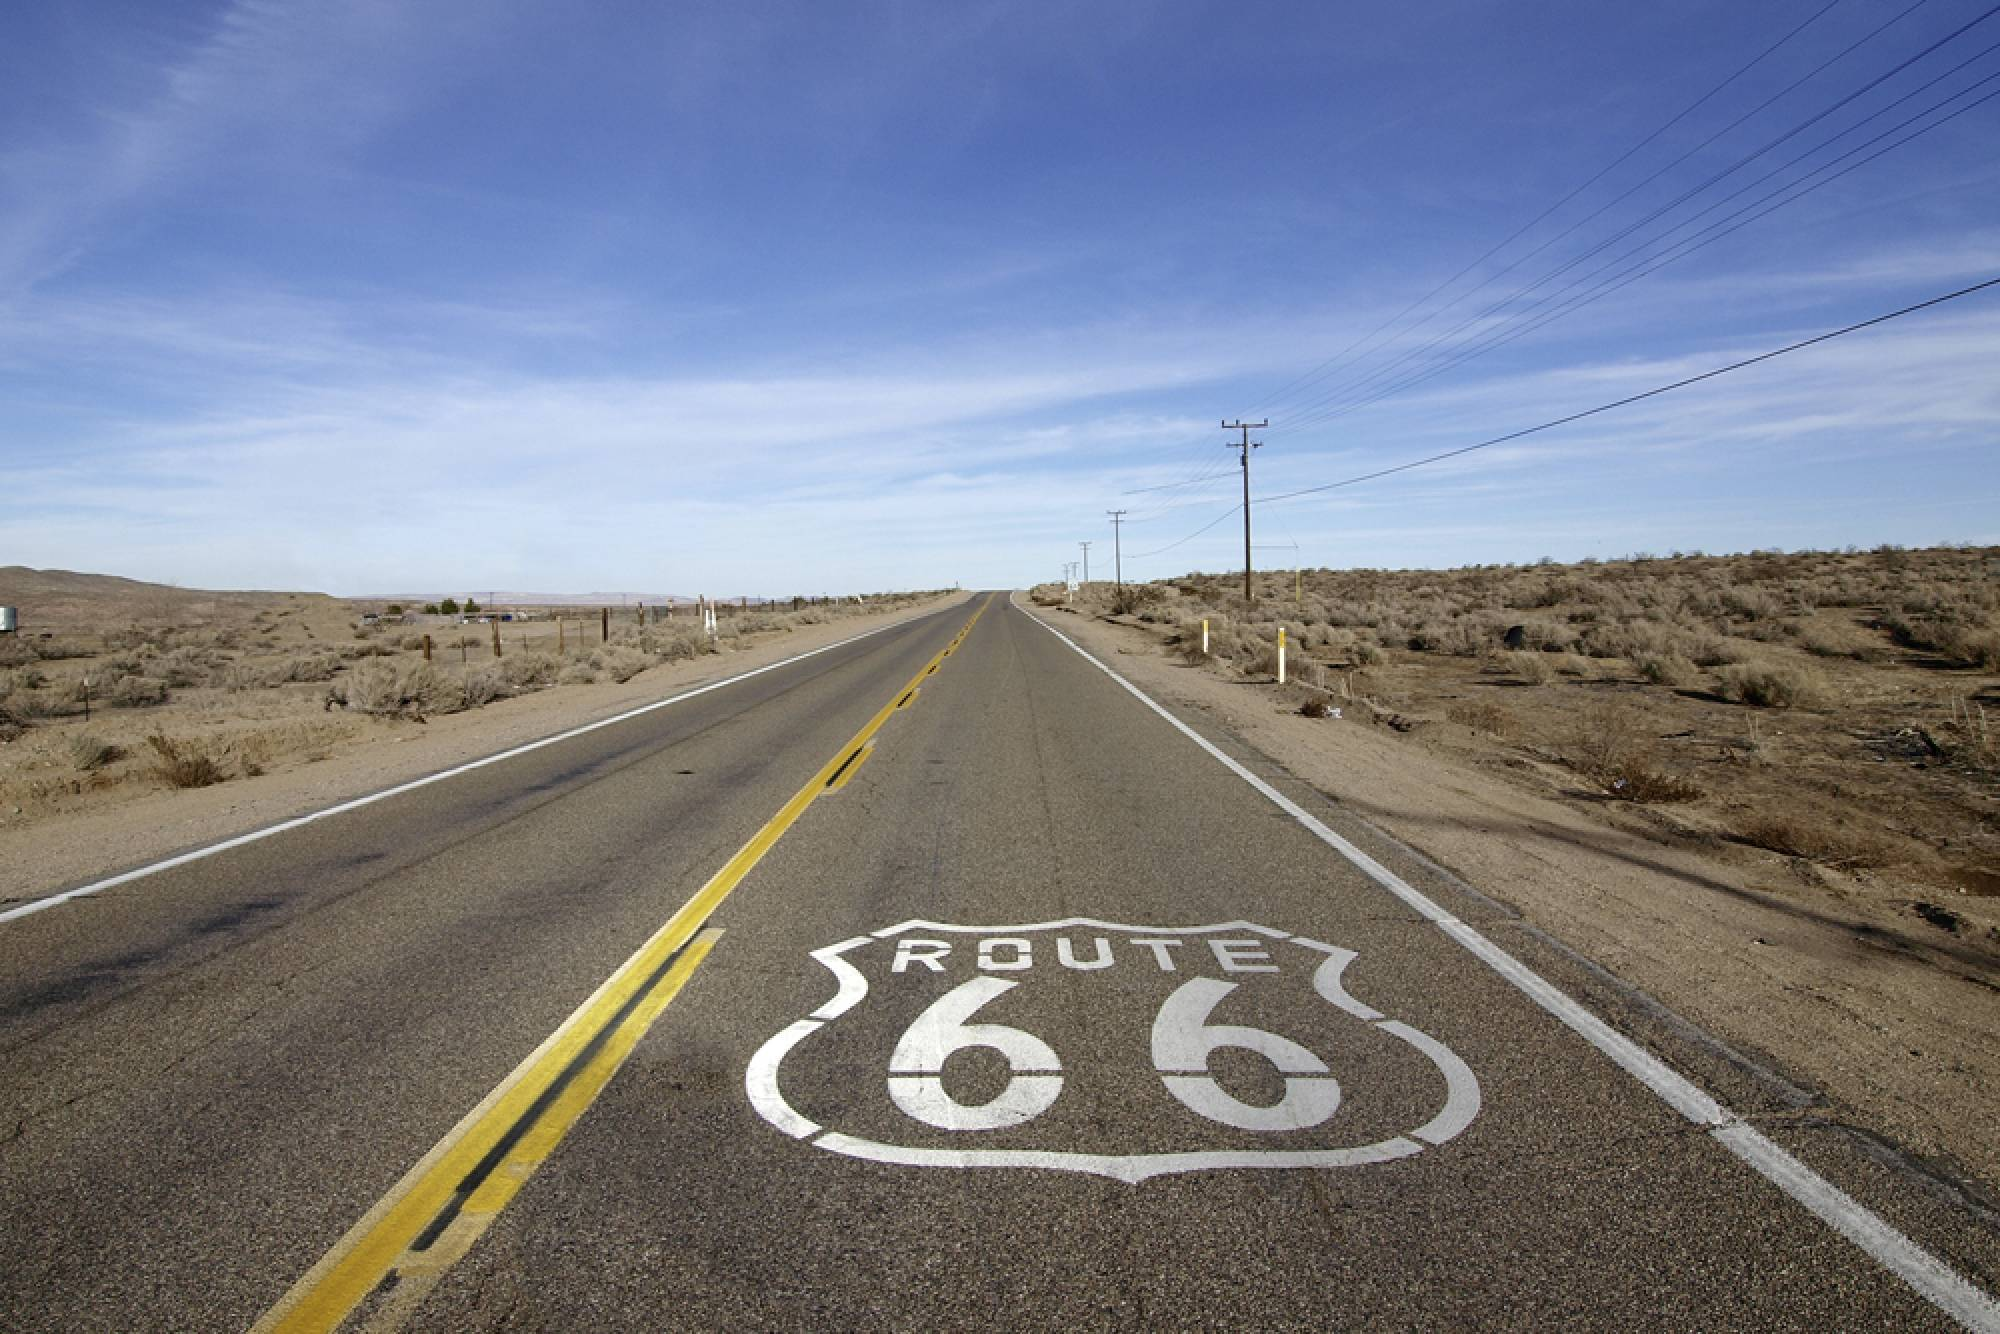 Awesome Route 66 Wallpaper